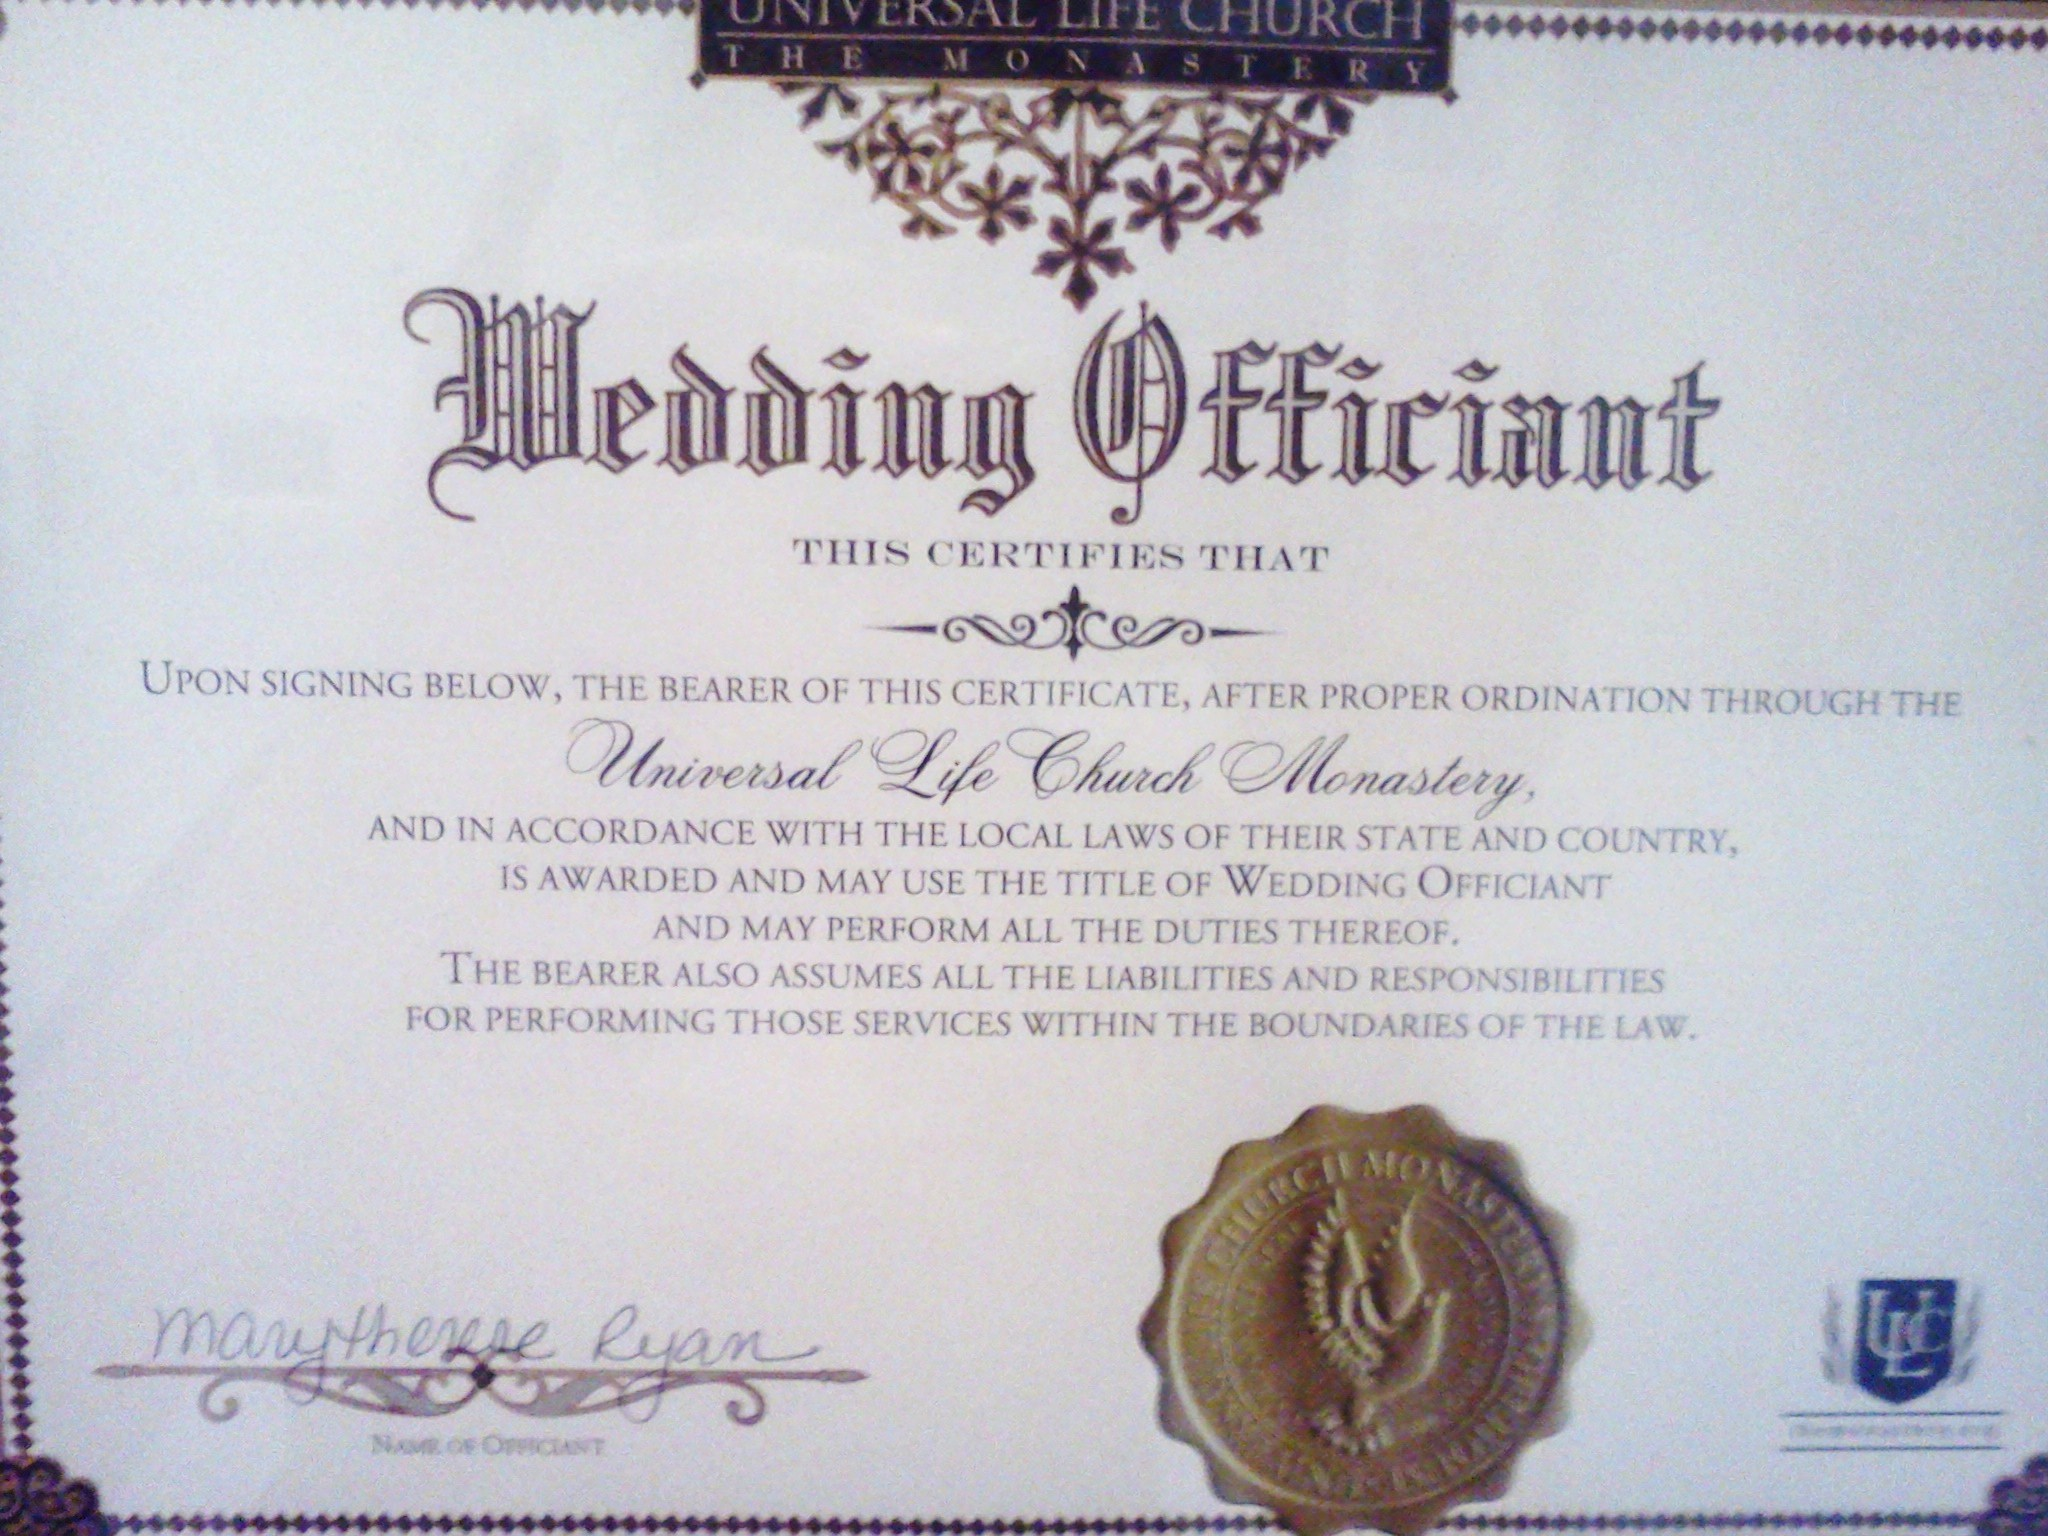 AbunDance Weddings   Begin with Bliss  Call 732 414 8644 Wedding officiant cert credentials